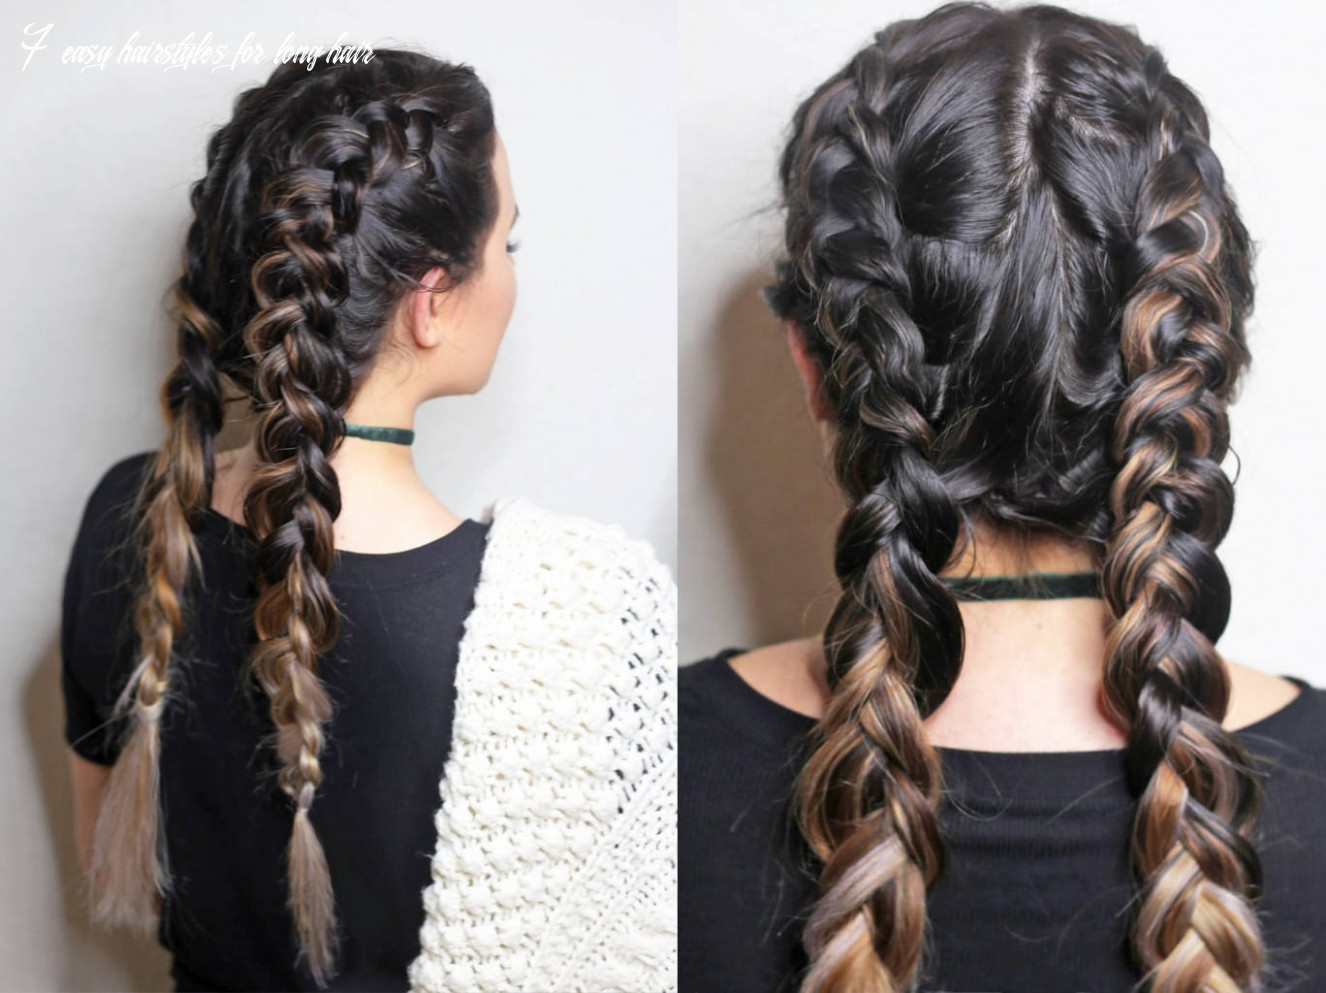 11 Easy Hairstyles for Long Hair | Beauty + Lifestyle | Mash Elle